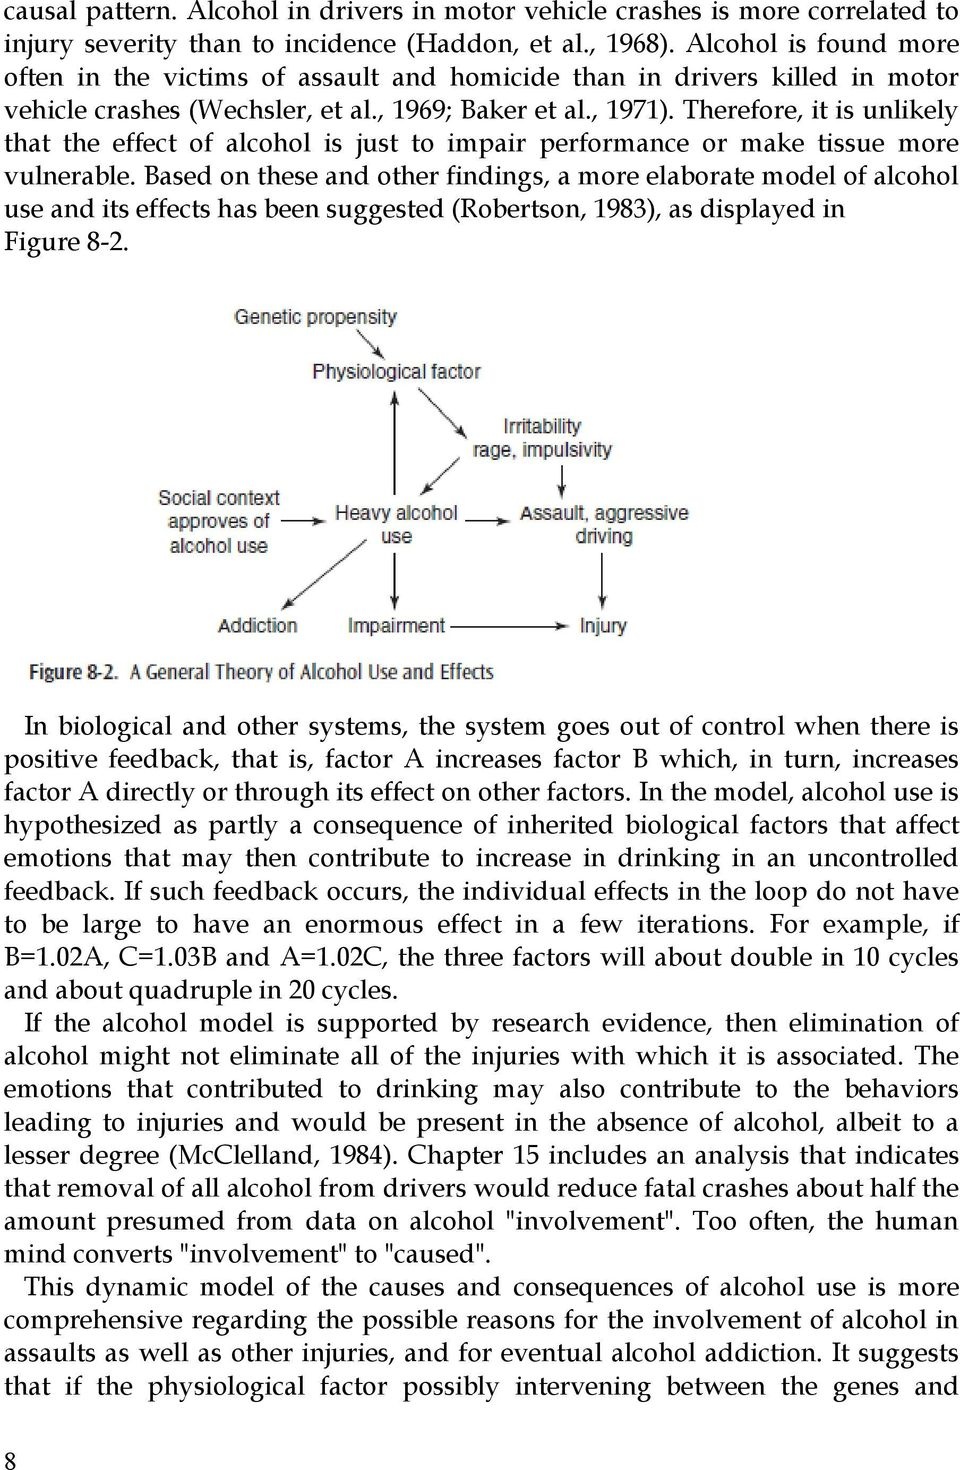 Therefore, it is unlikely that the effect of alcohol is just to impair performance or make tissue more vulnerable.